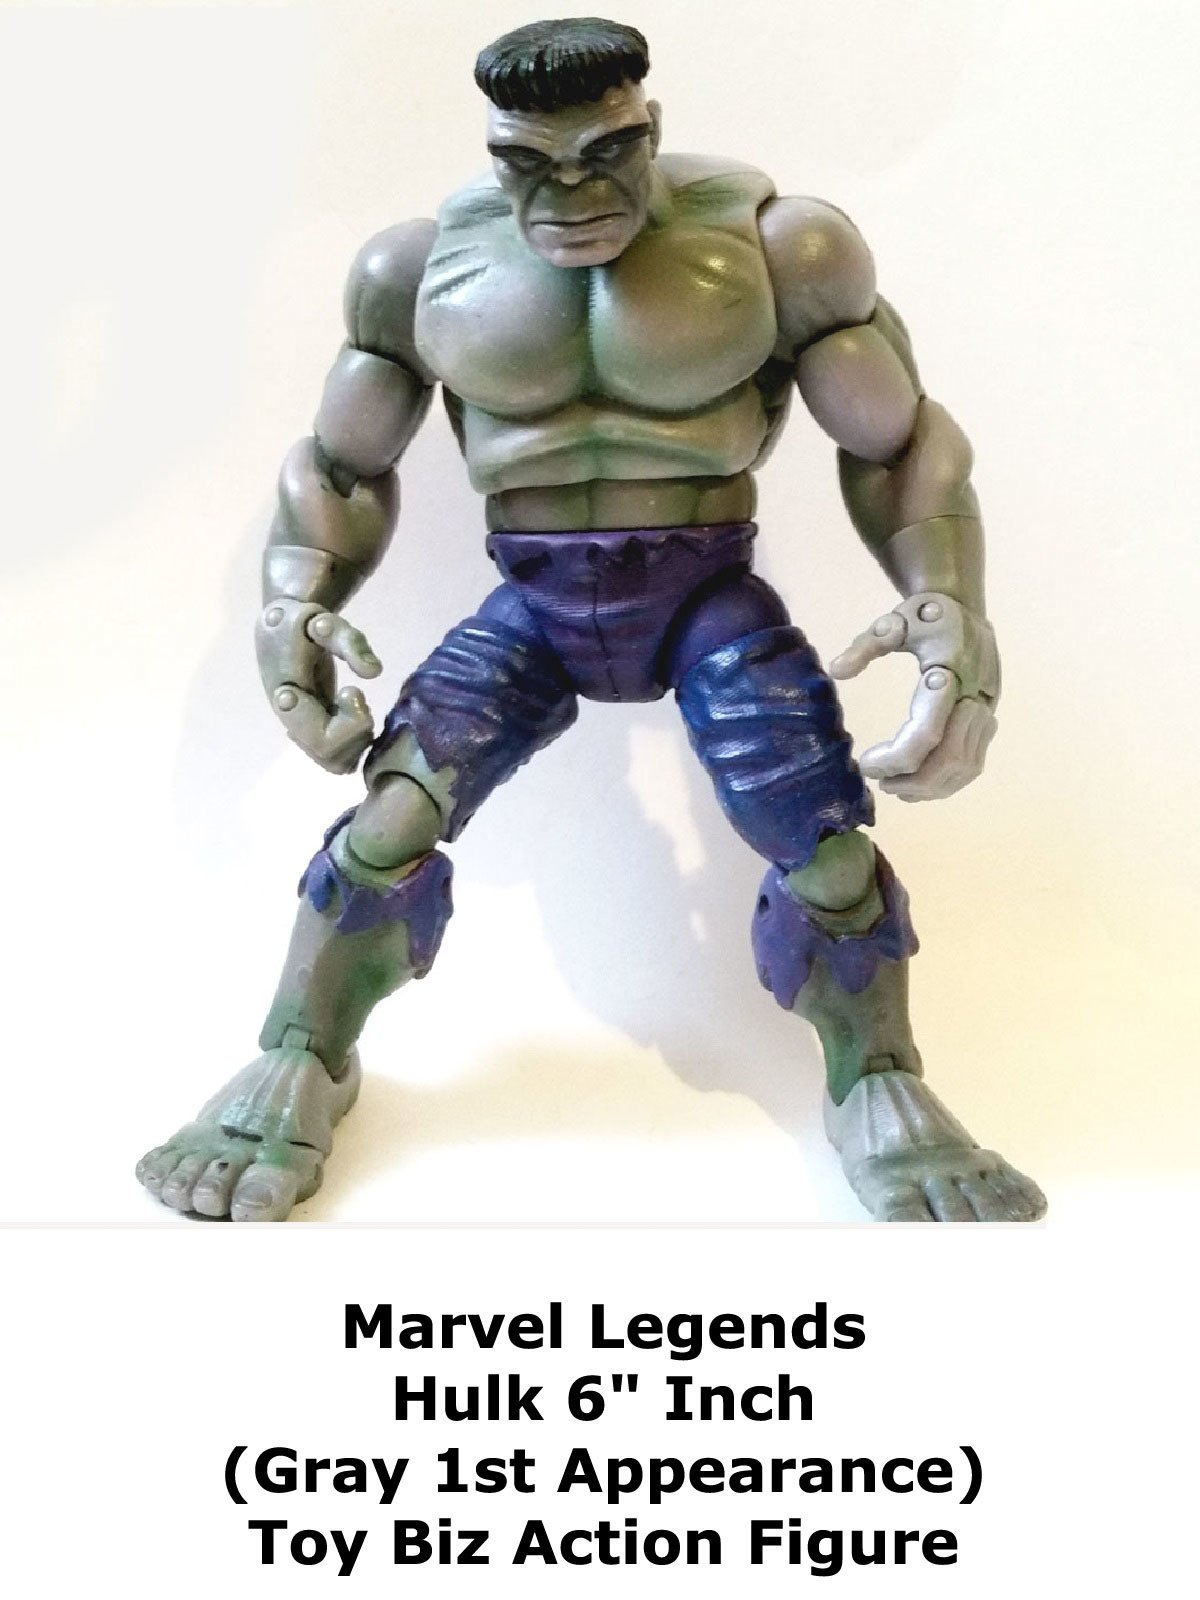 "Review: Marvel Legends Hulk 6"" Inch (Gray 1st Appearance) Toy Biz Action Figure"